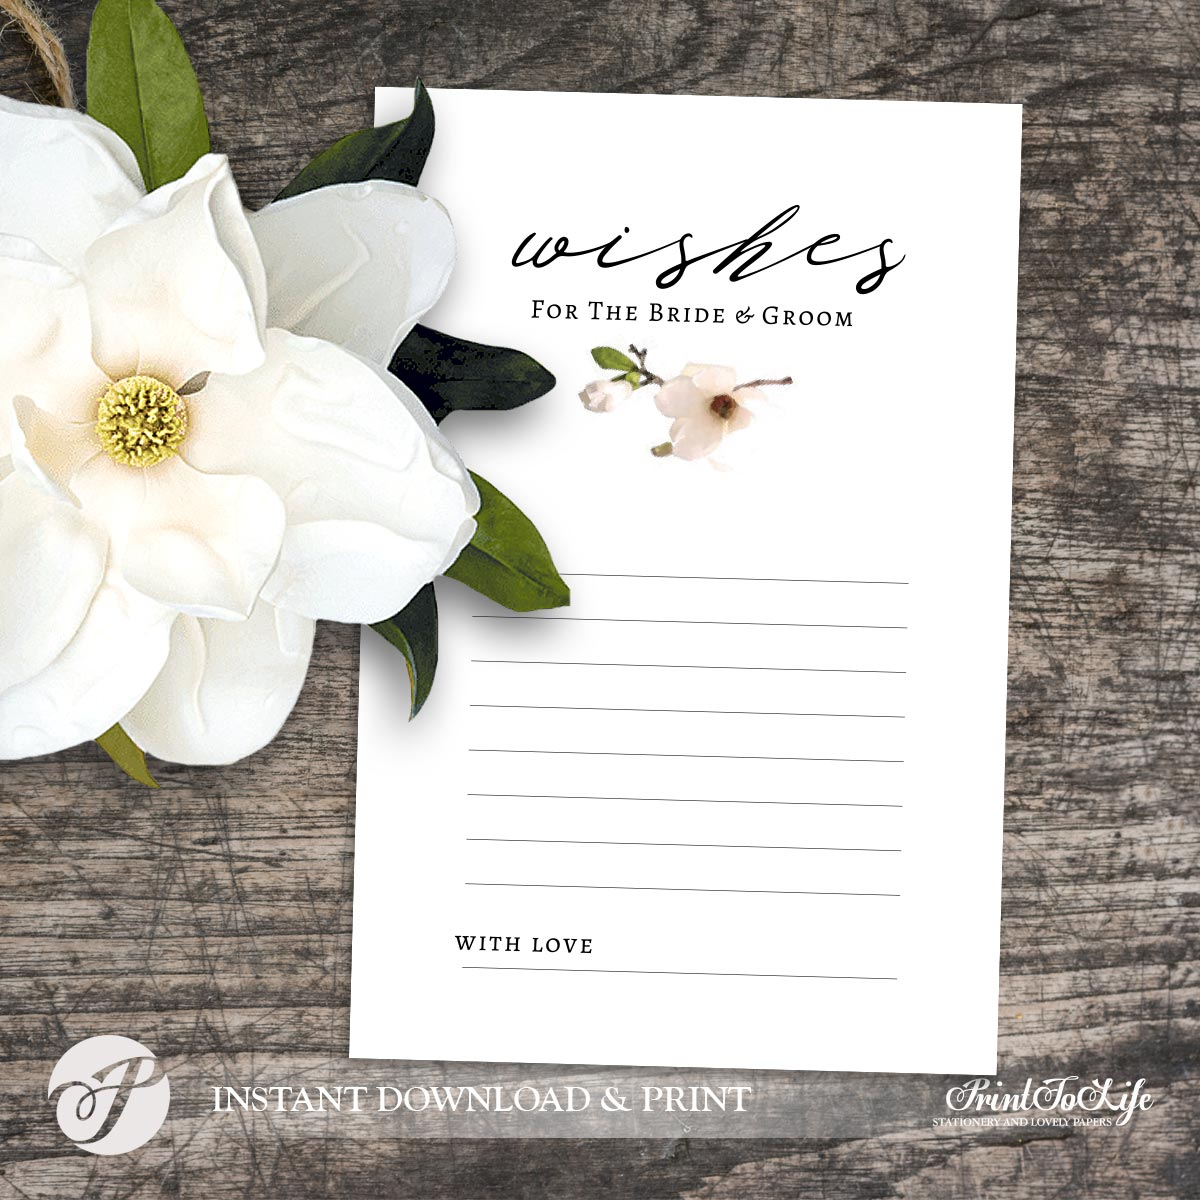 Wedding Card Wishes.Wedding Wishes Card Wishes For The Bride And Groom